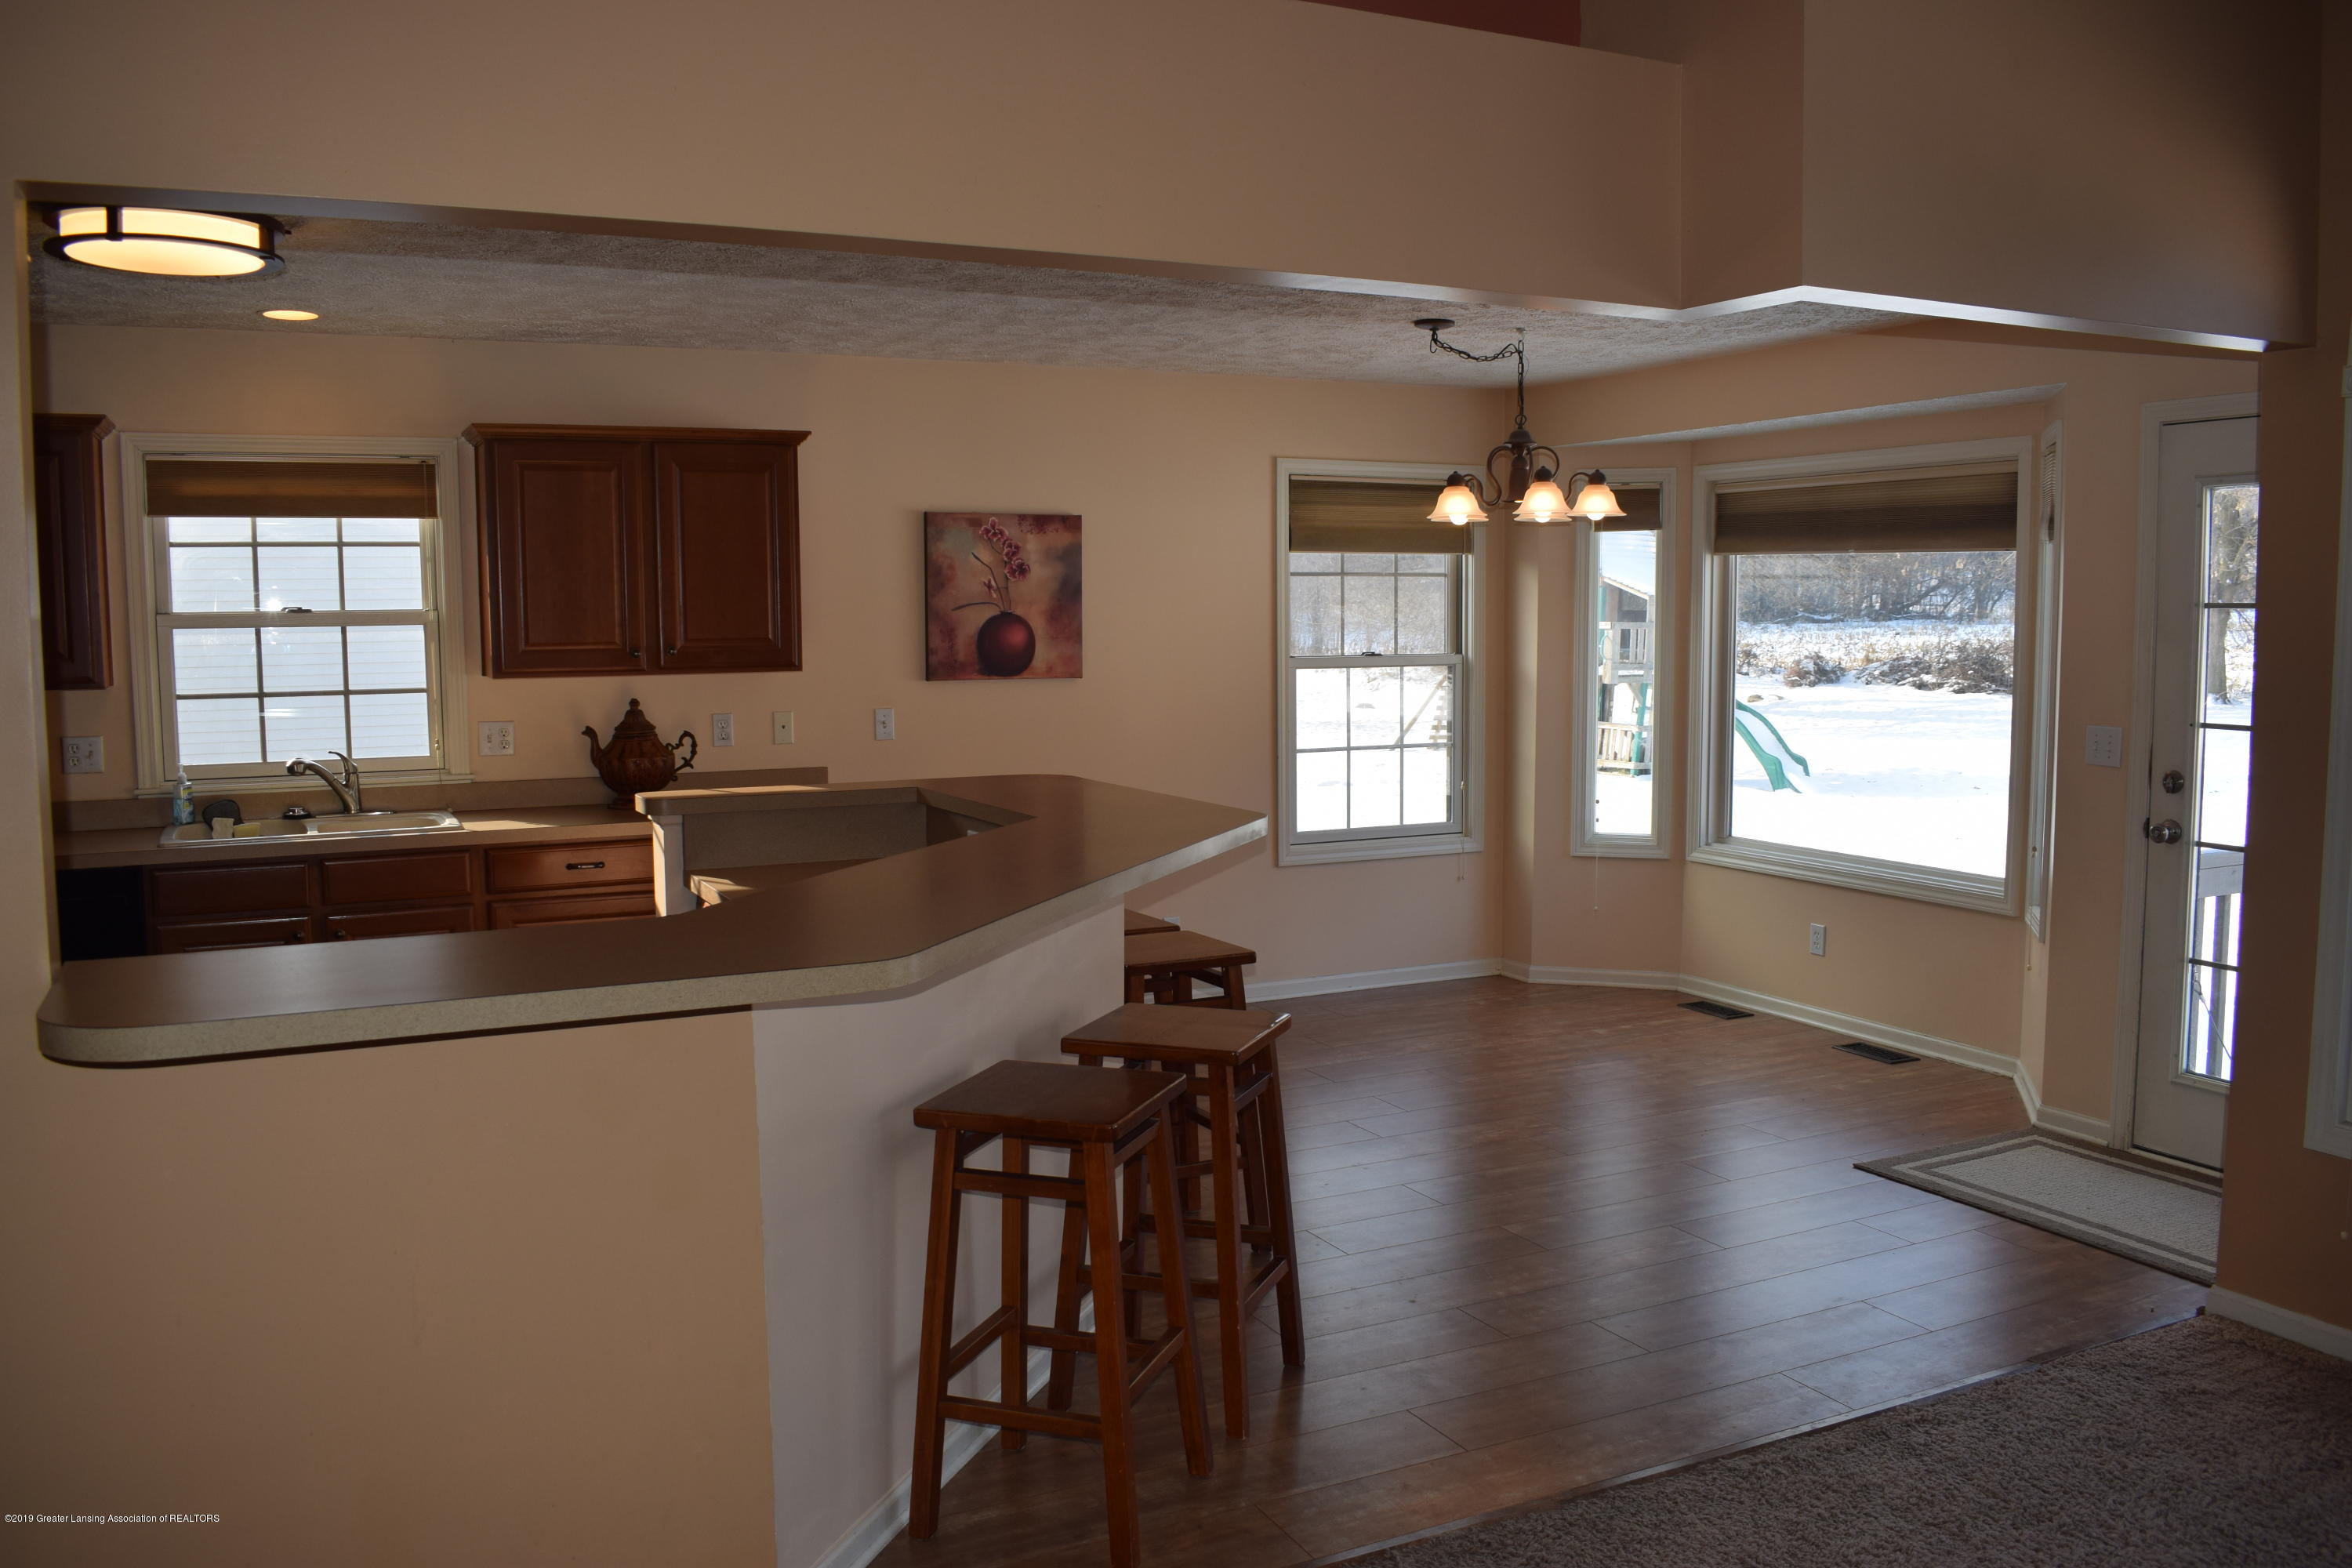 12930 Chartreuse Dr - 4 - 4